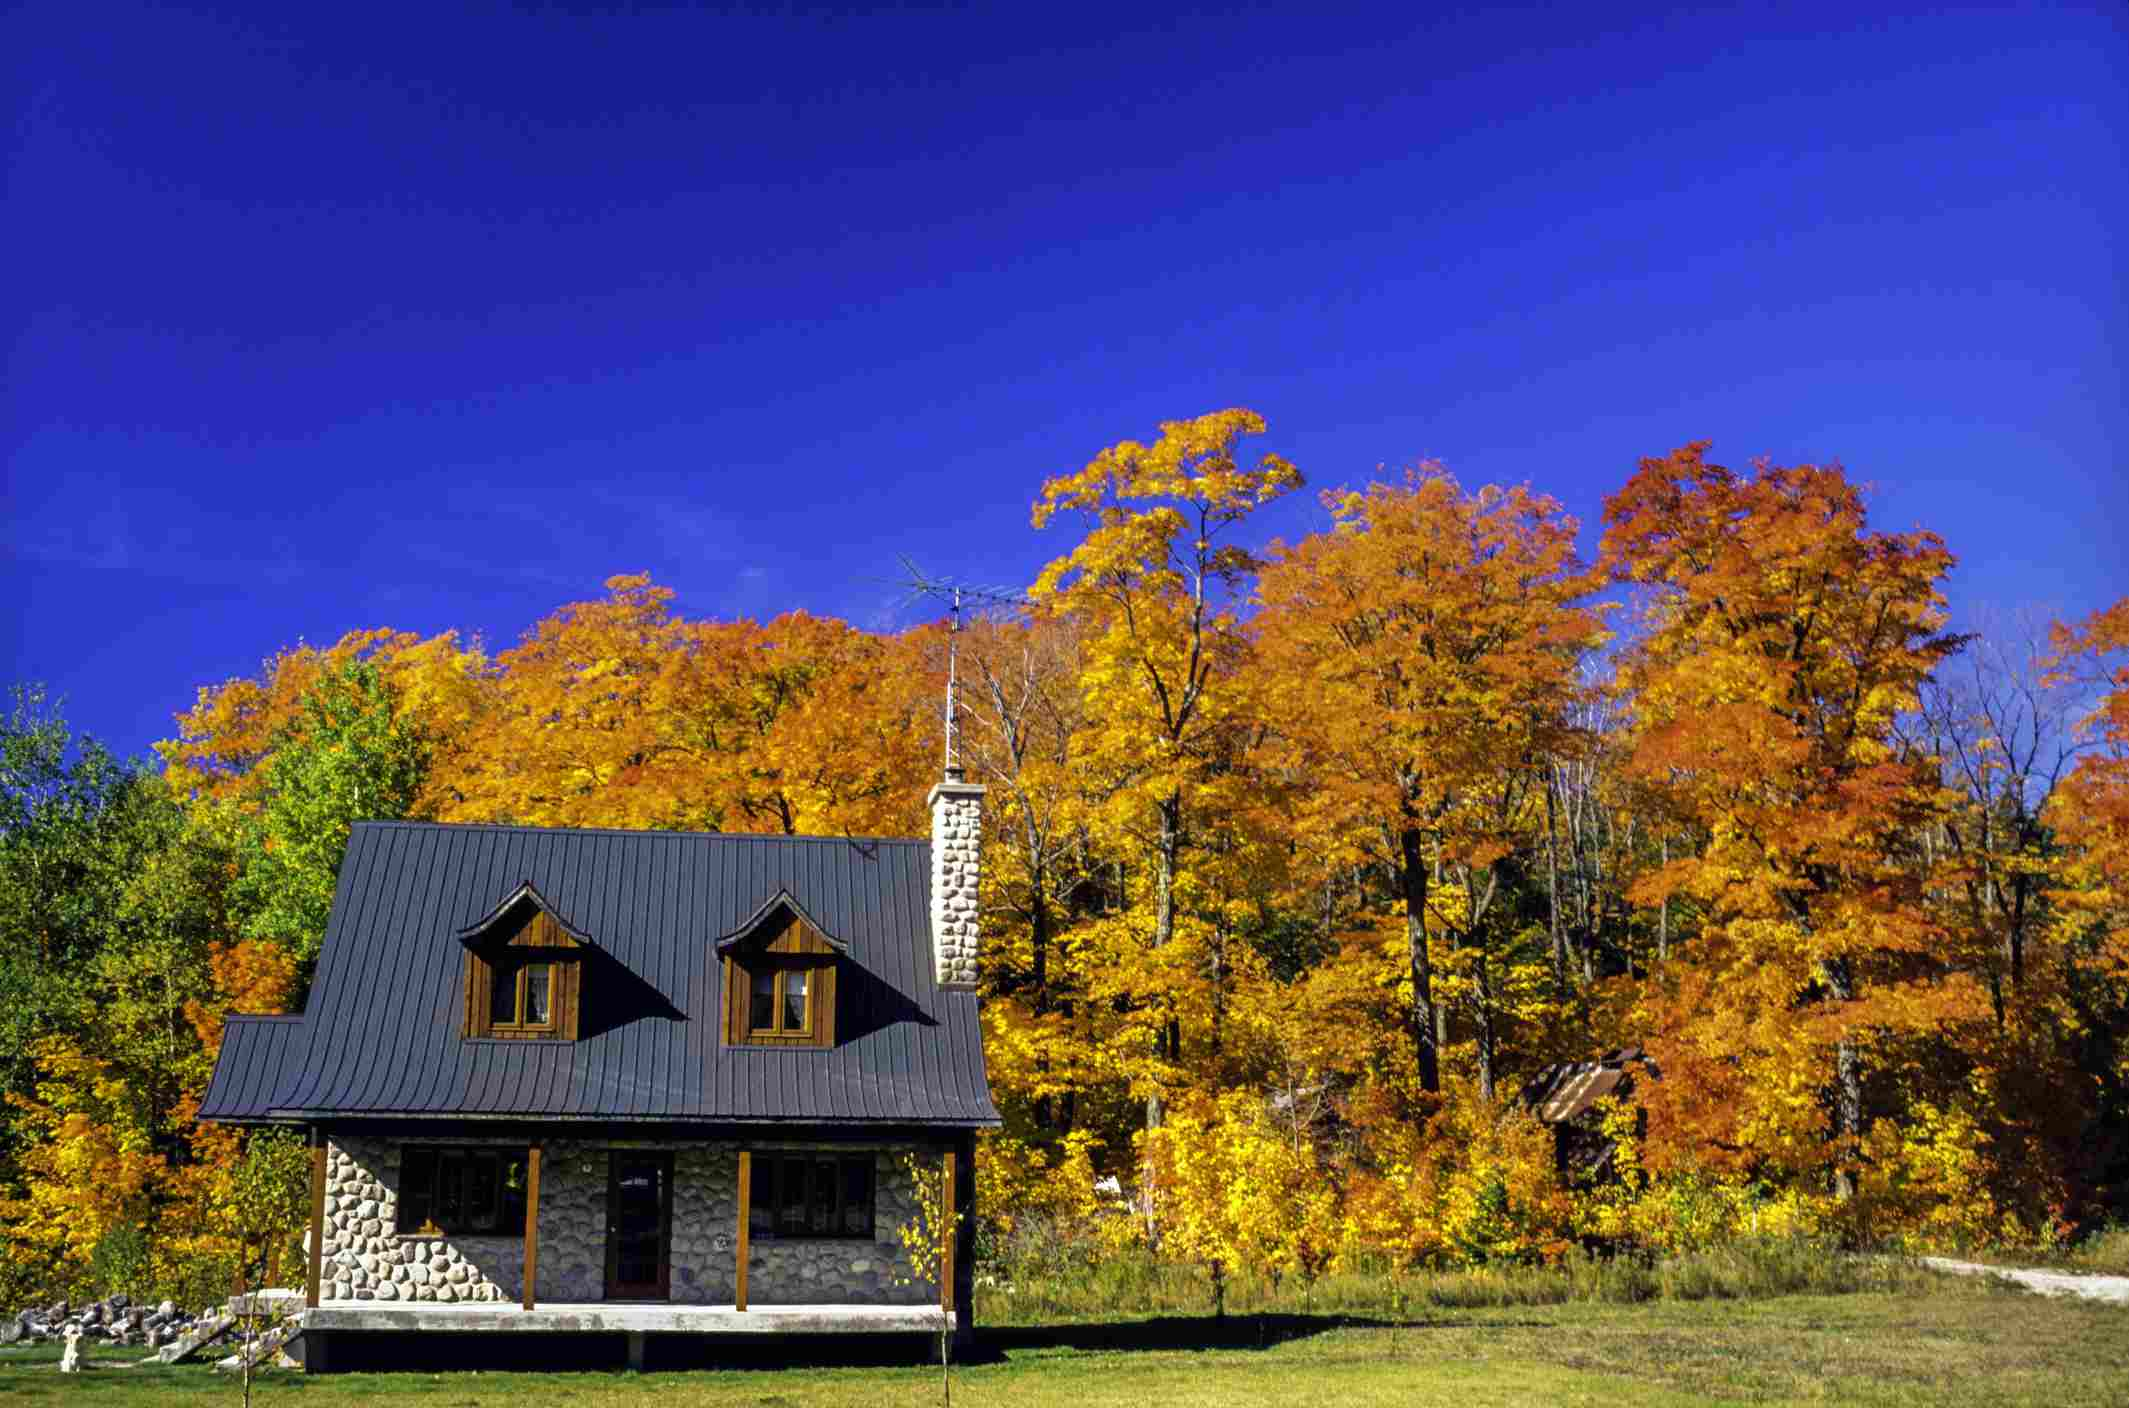 Little Stone cabin in the Laurentian forest in autumn (fall), Quebec - Canada